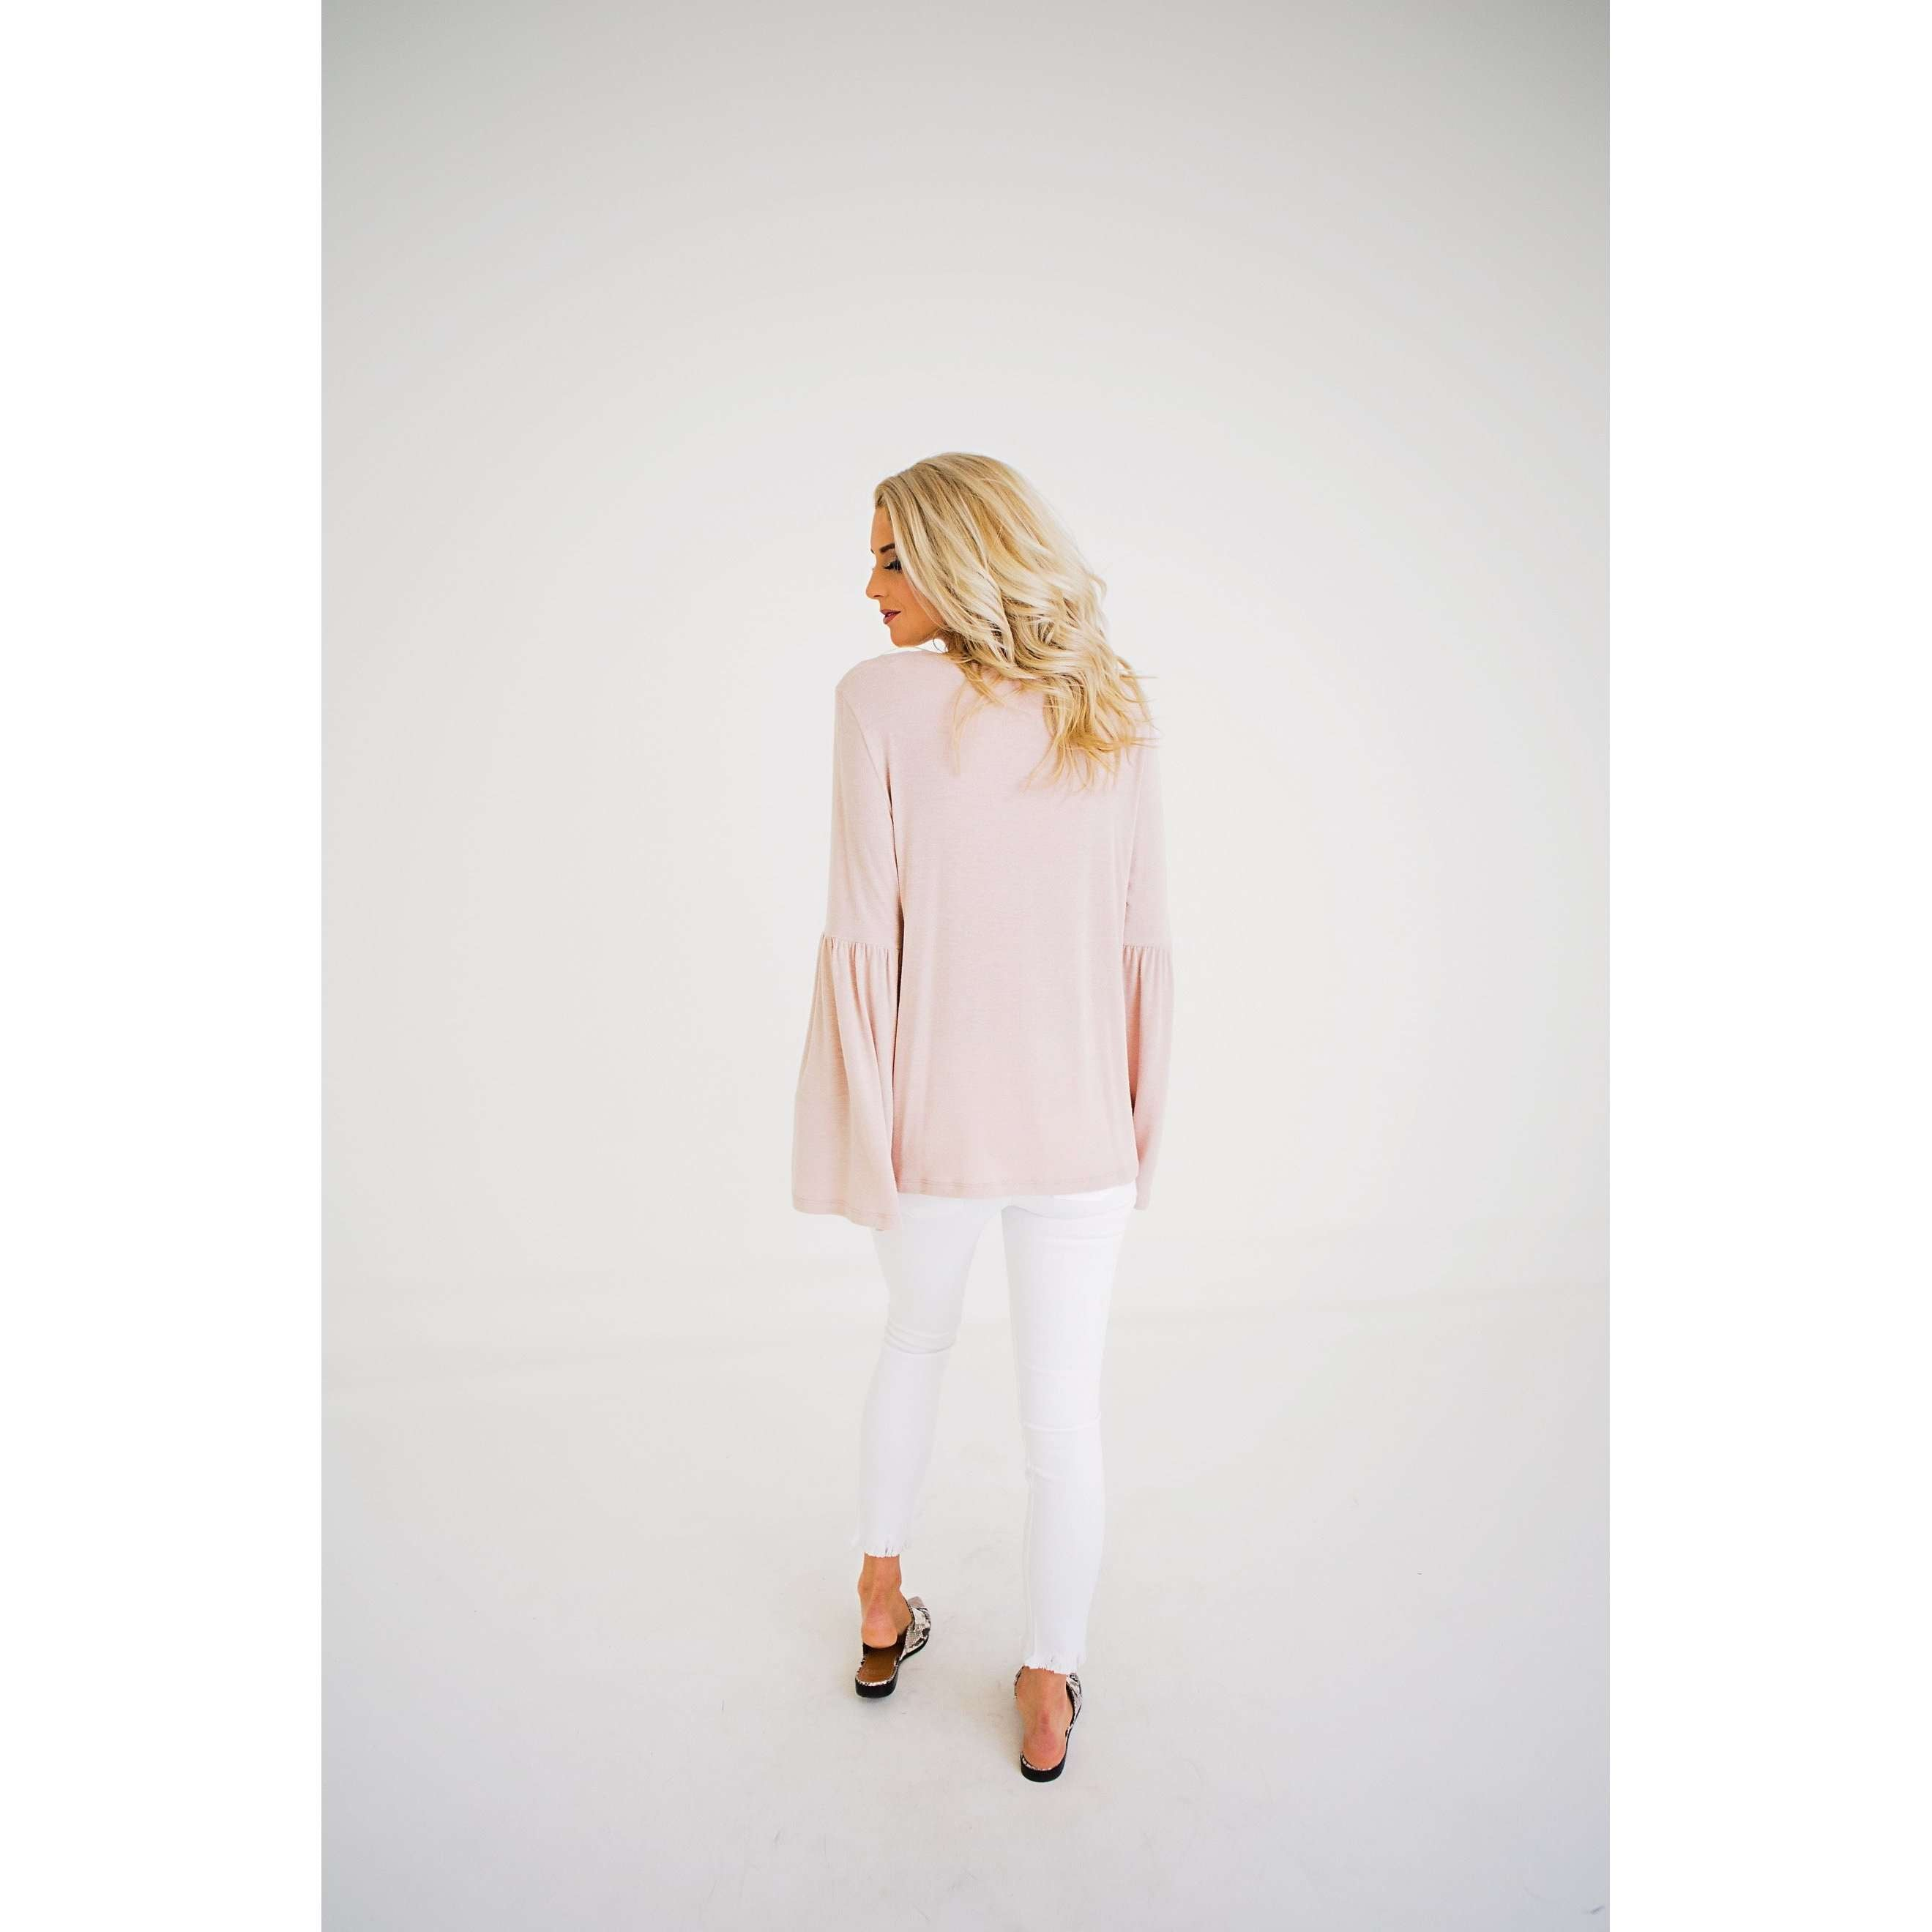 8.28 Boutique:Karlie Clothes,Karlie Clothes Blush Bell Sleeve Sweater,Tops